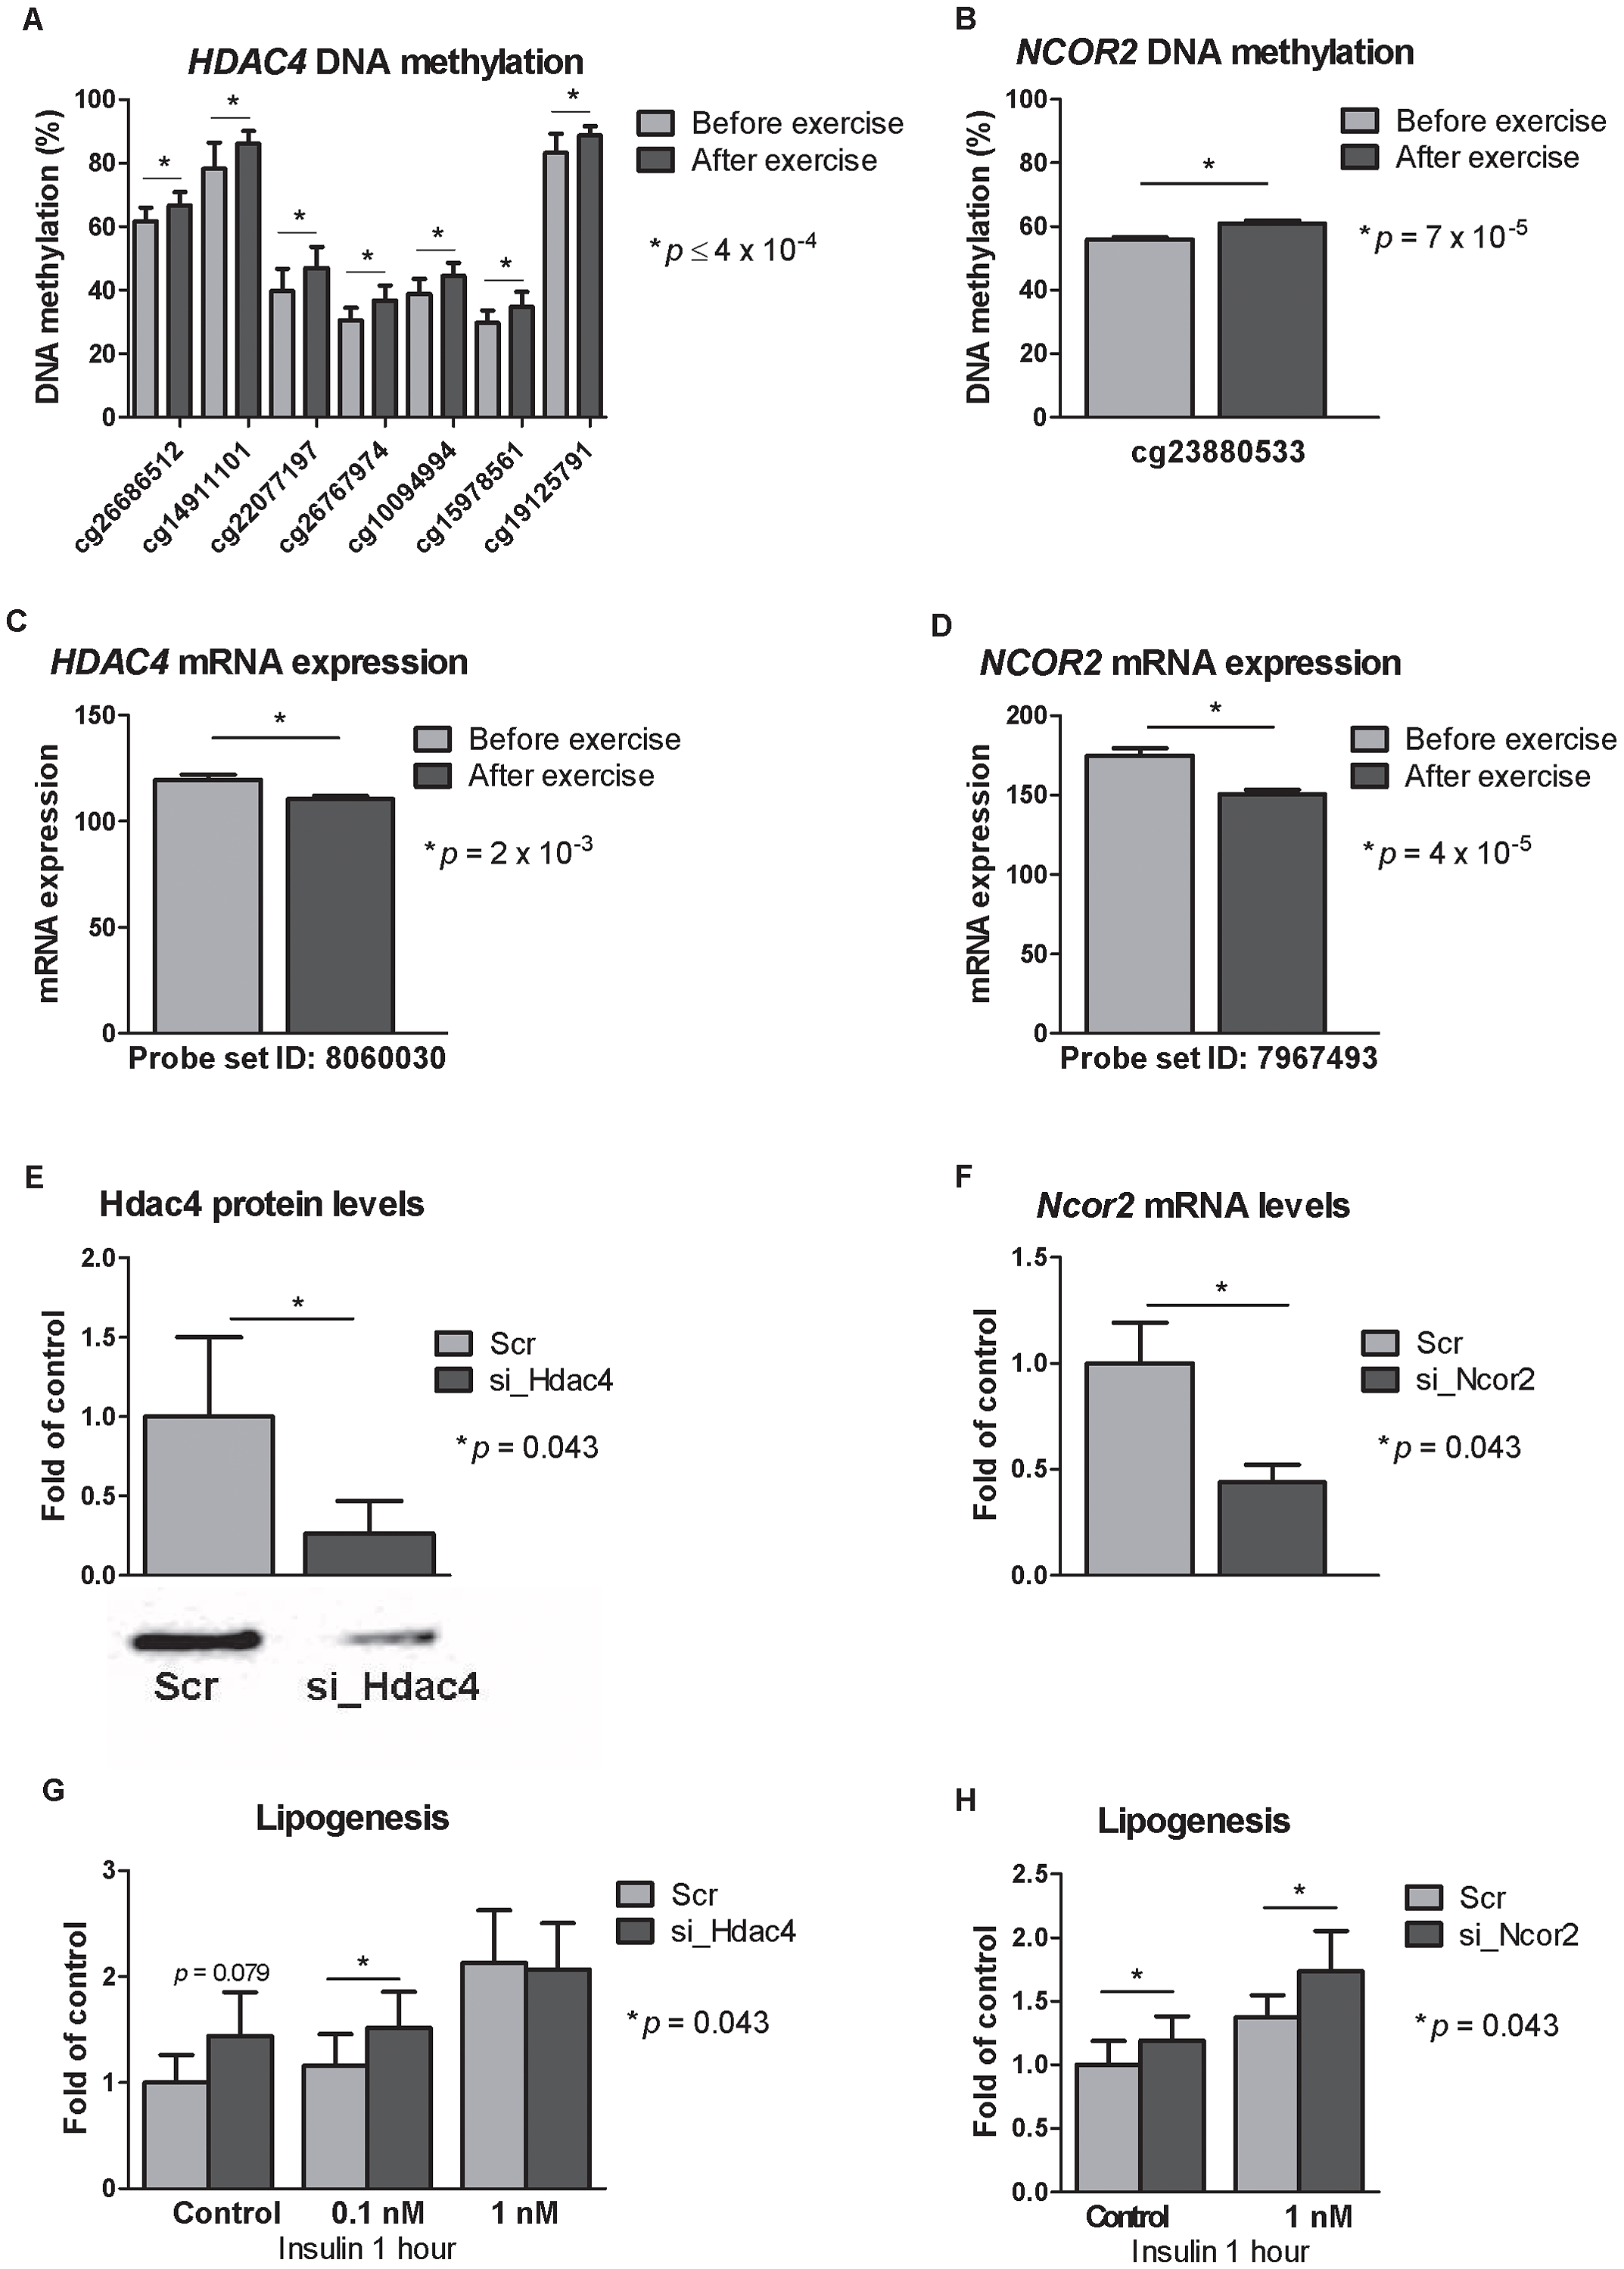 Silencing of Hdac4 and Ncor2 in 3T3-L1 adipocytes results in increased lipogenesis.